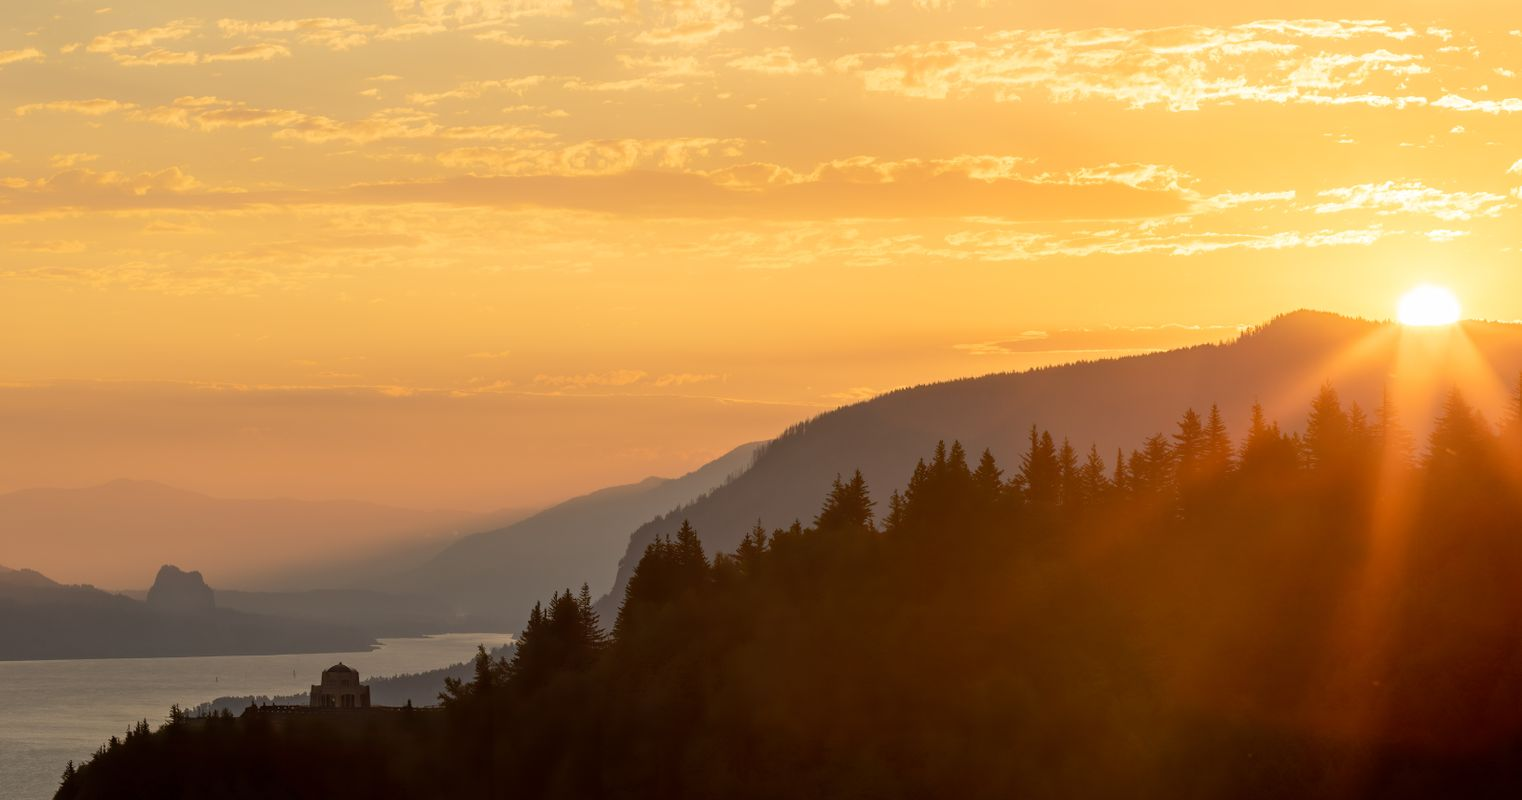 Columbia River Gorge- Another sunrise